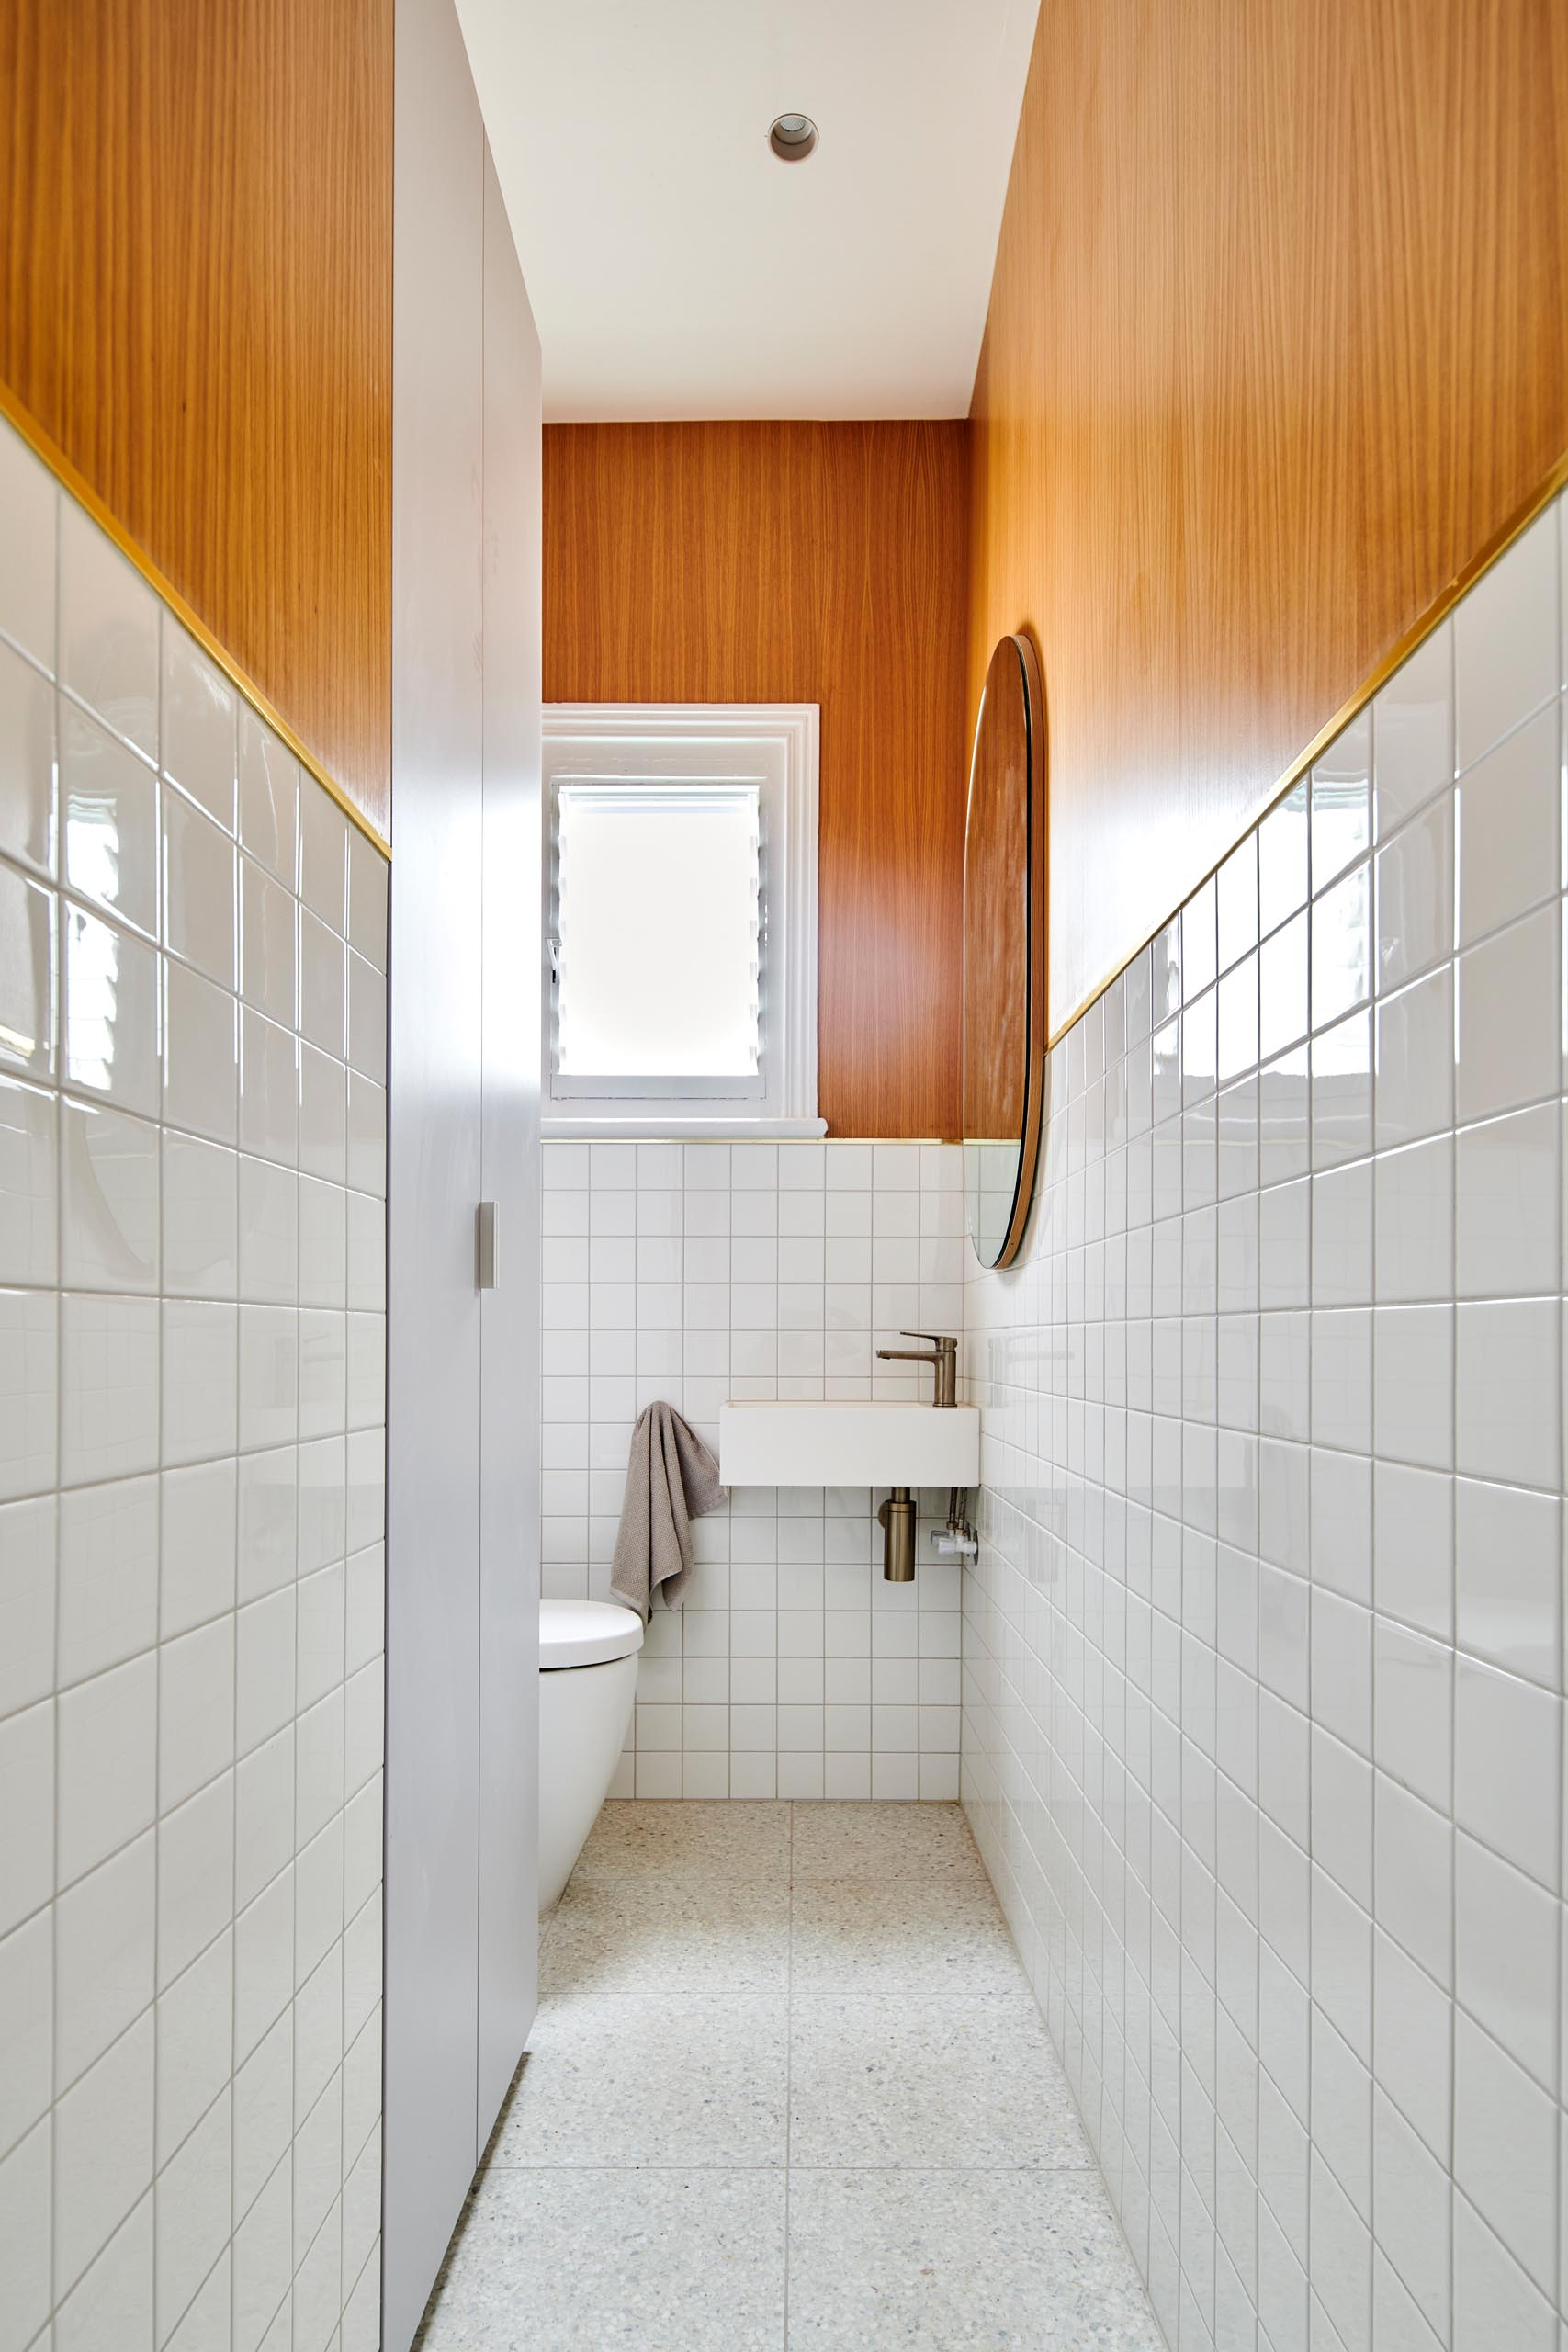 A modern white bathroom with wood accent.